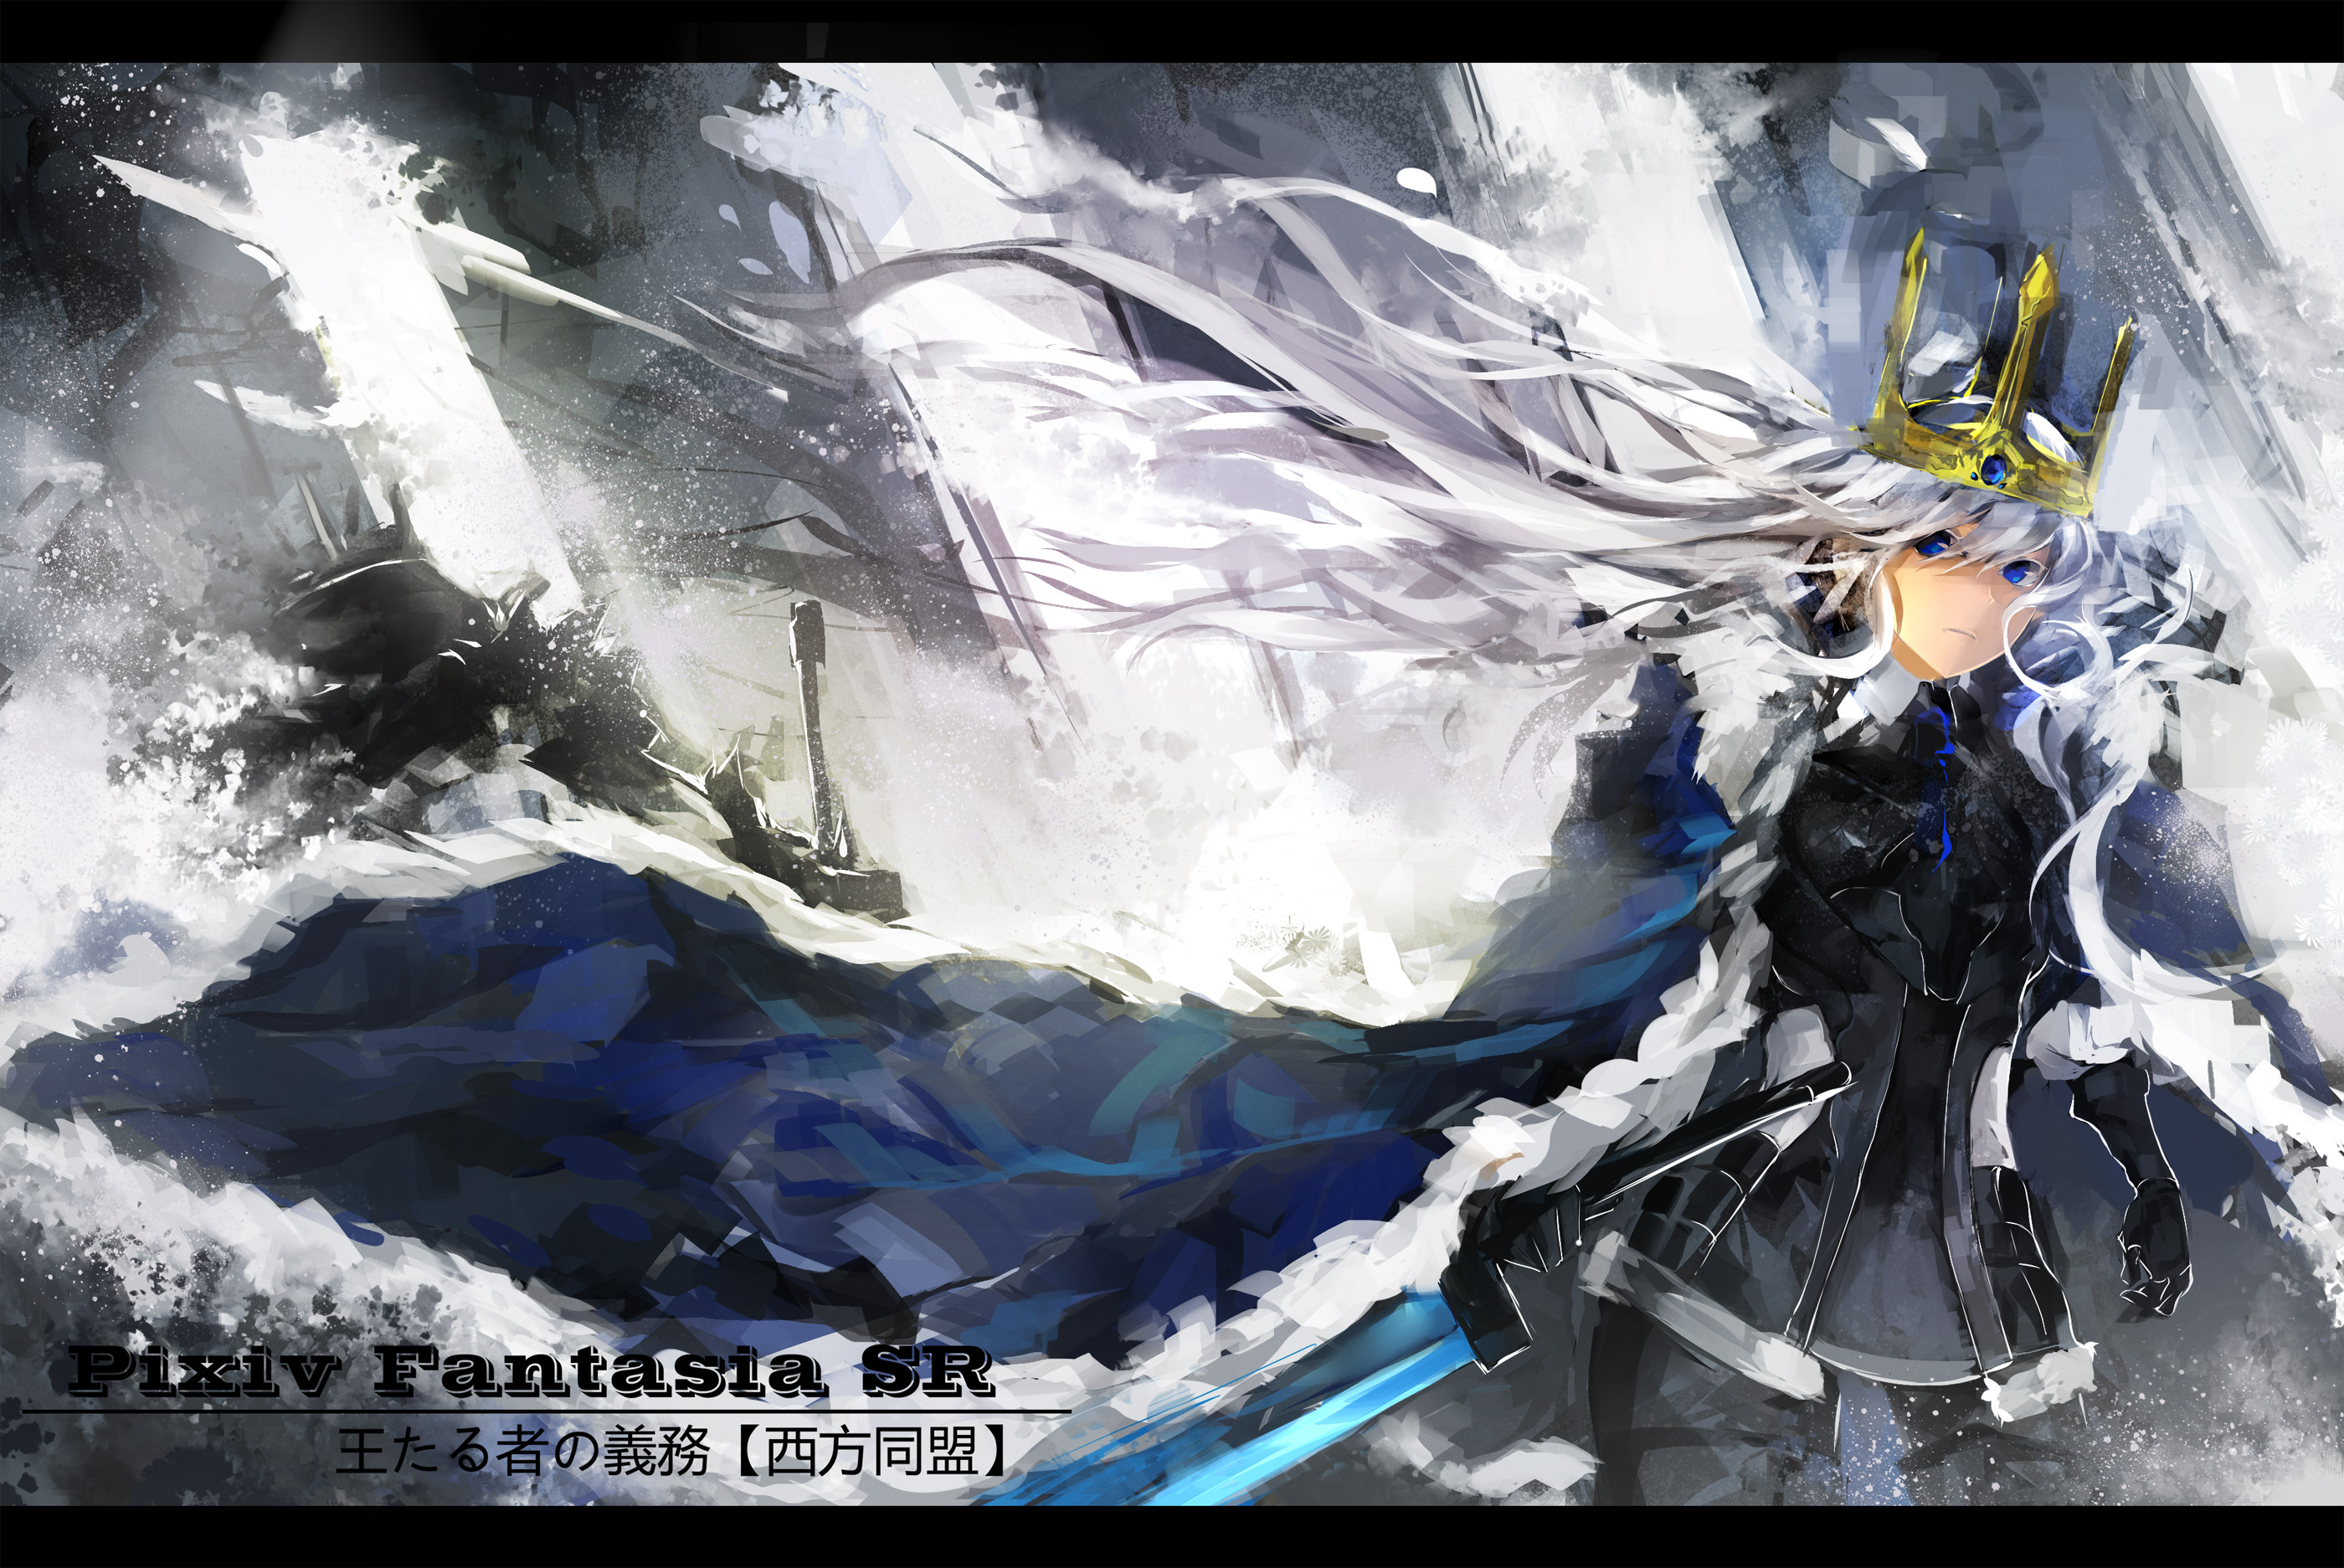 anime girl with white hair and red eyes with sword